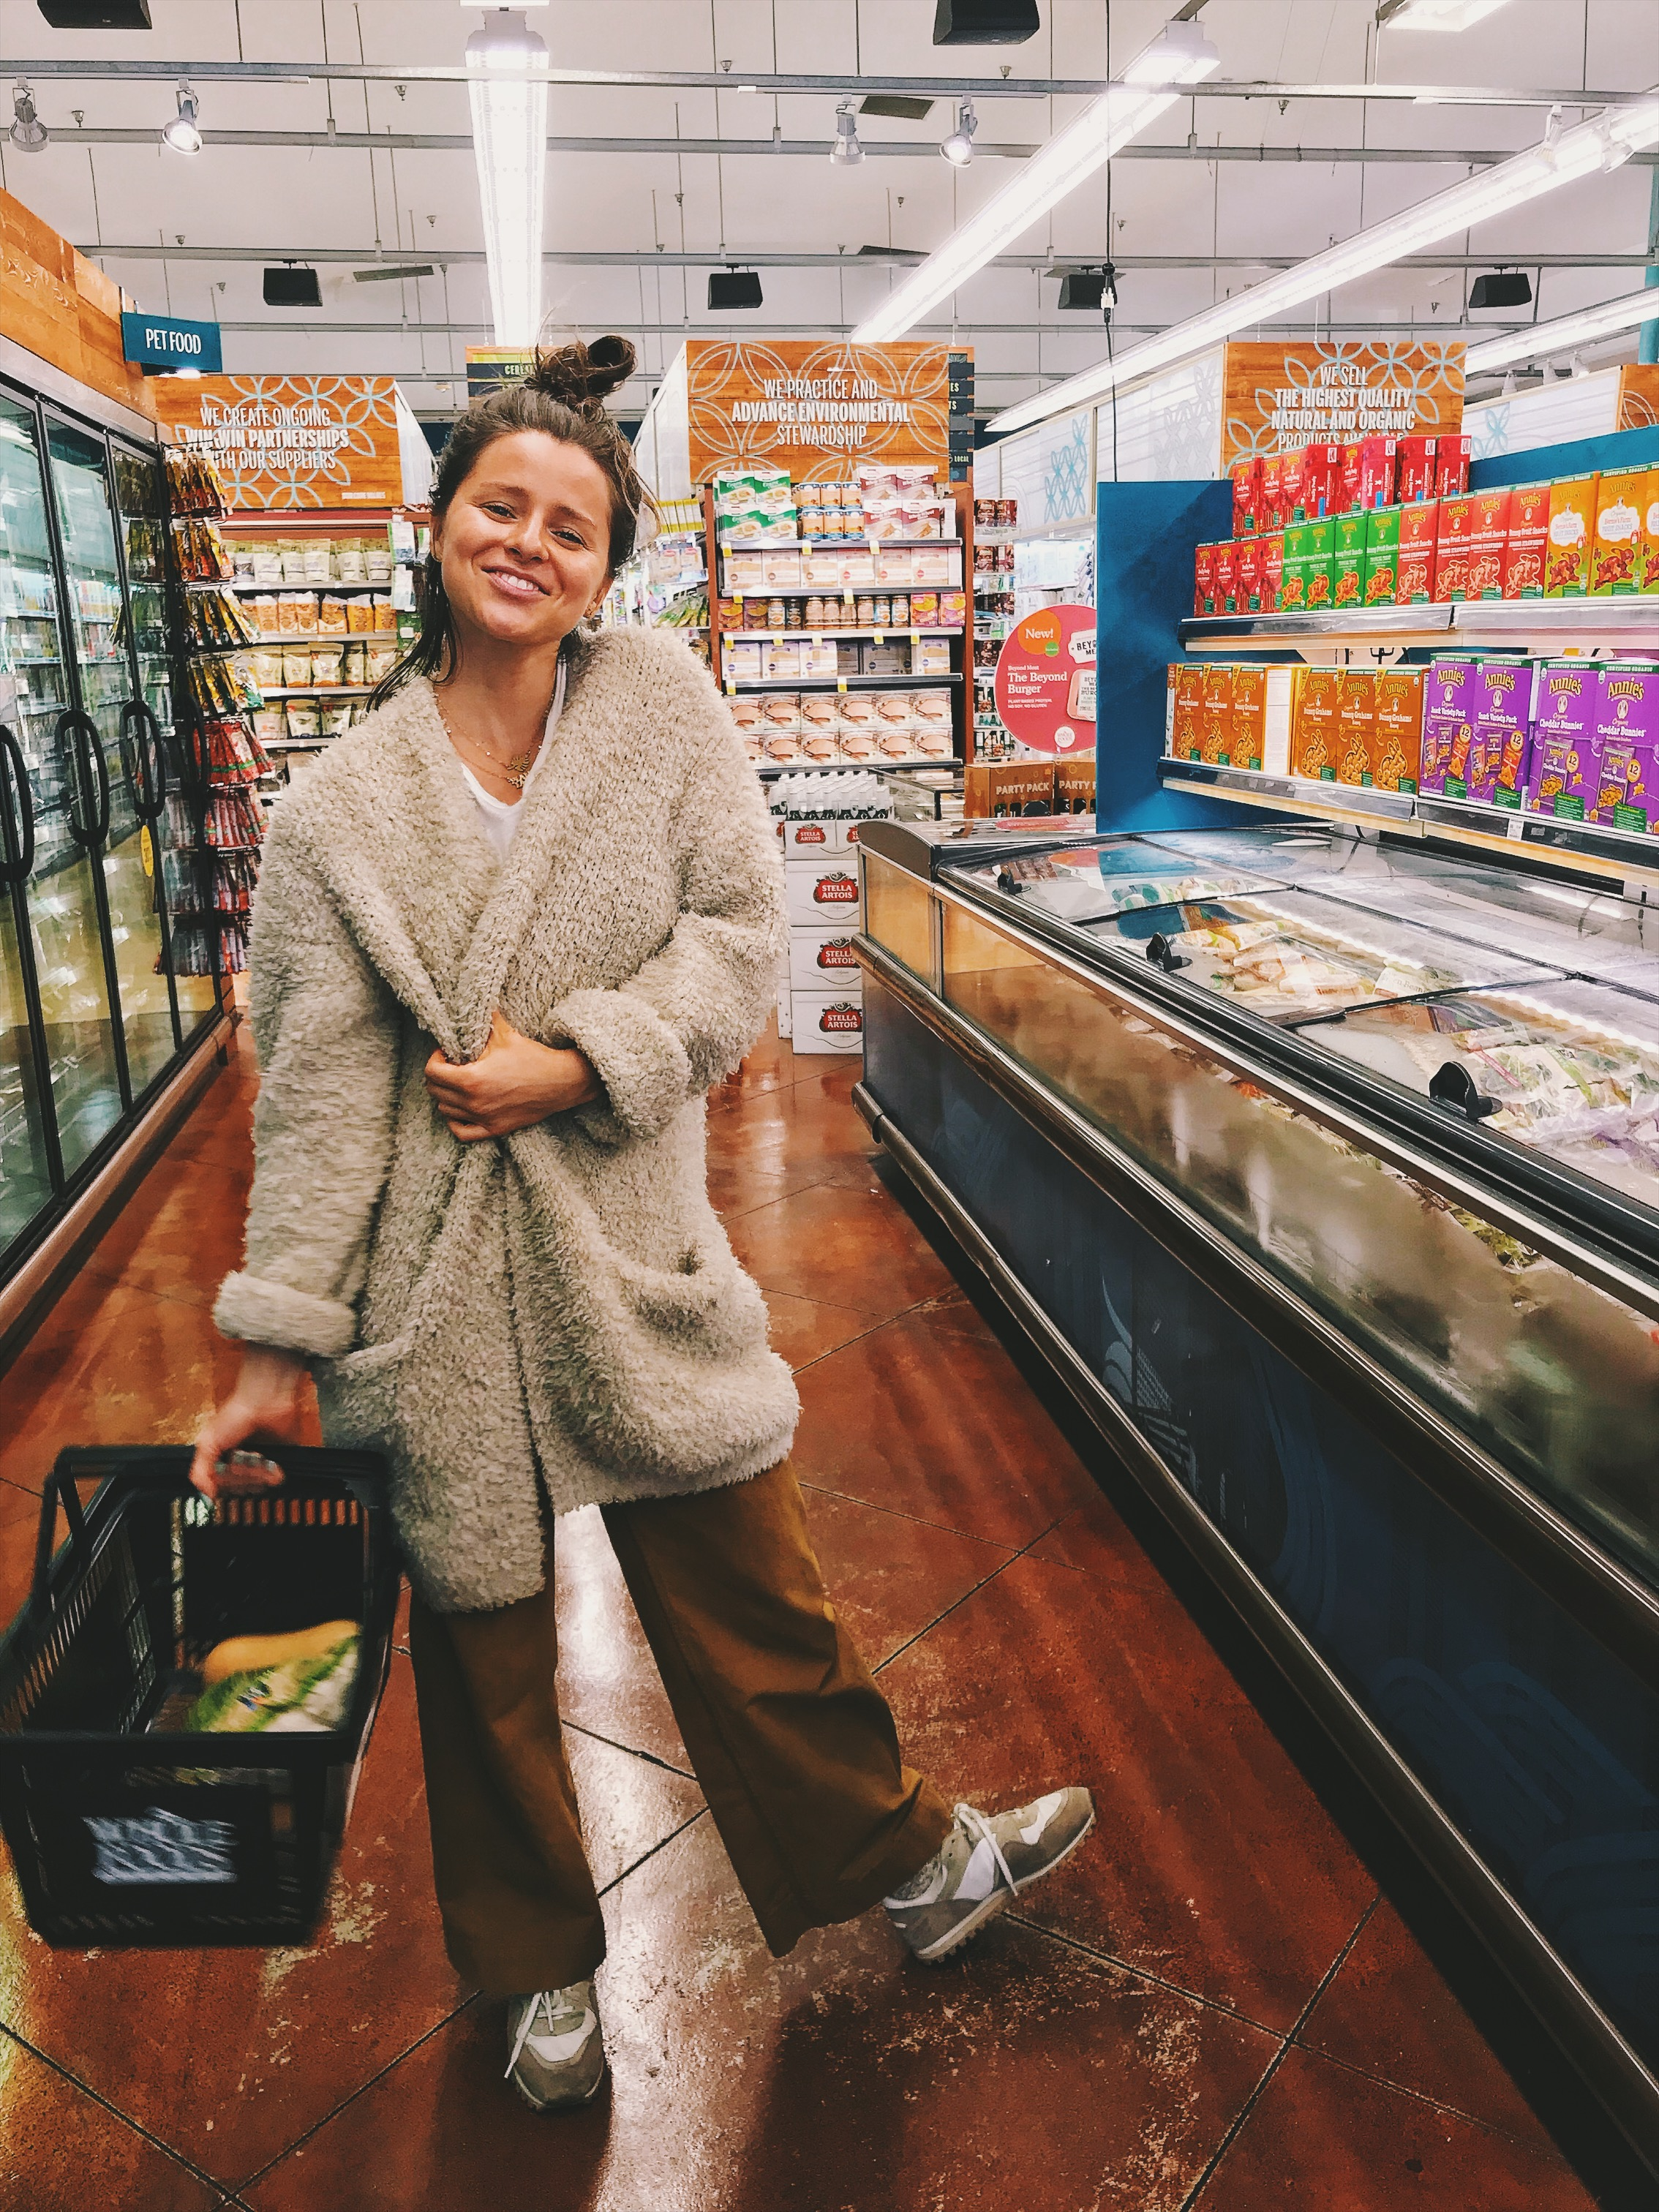 In my happy place, AKA, the frozen foods aisle.